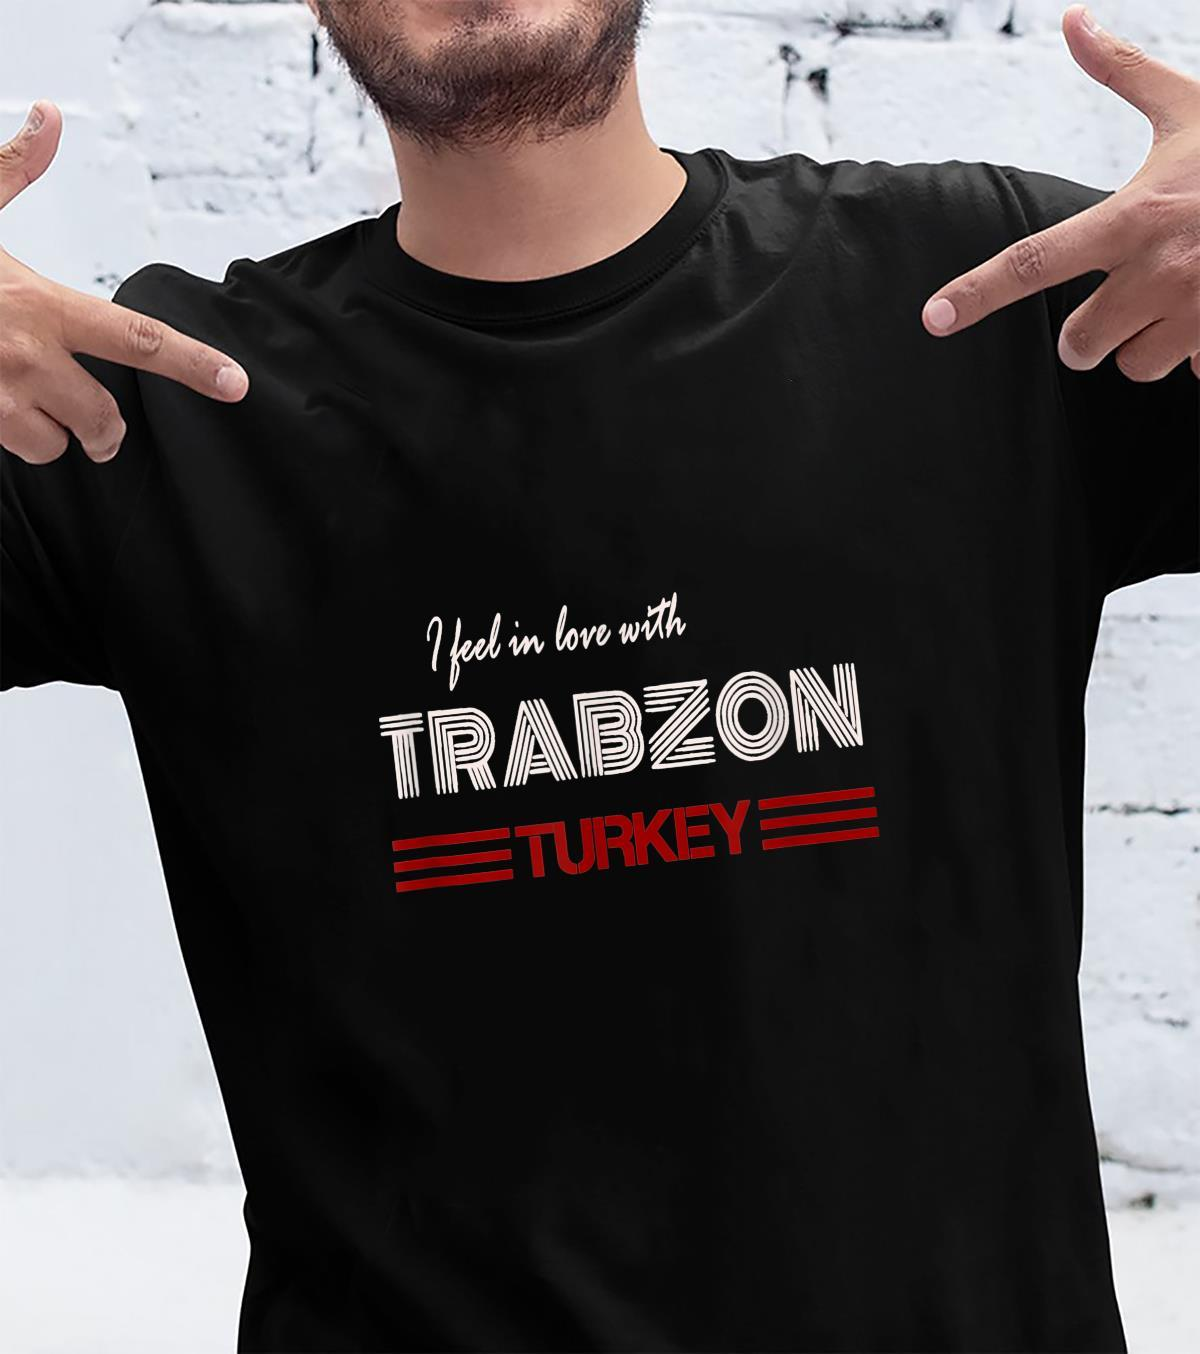 TShirt with Turkey Trabzon Design Ich Feel Mich in Trabzon in Love Shirt